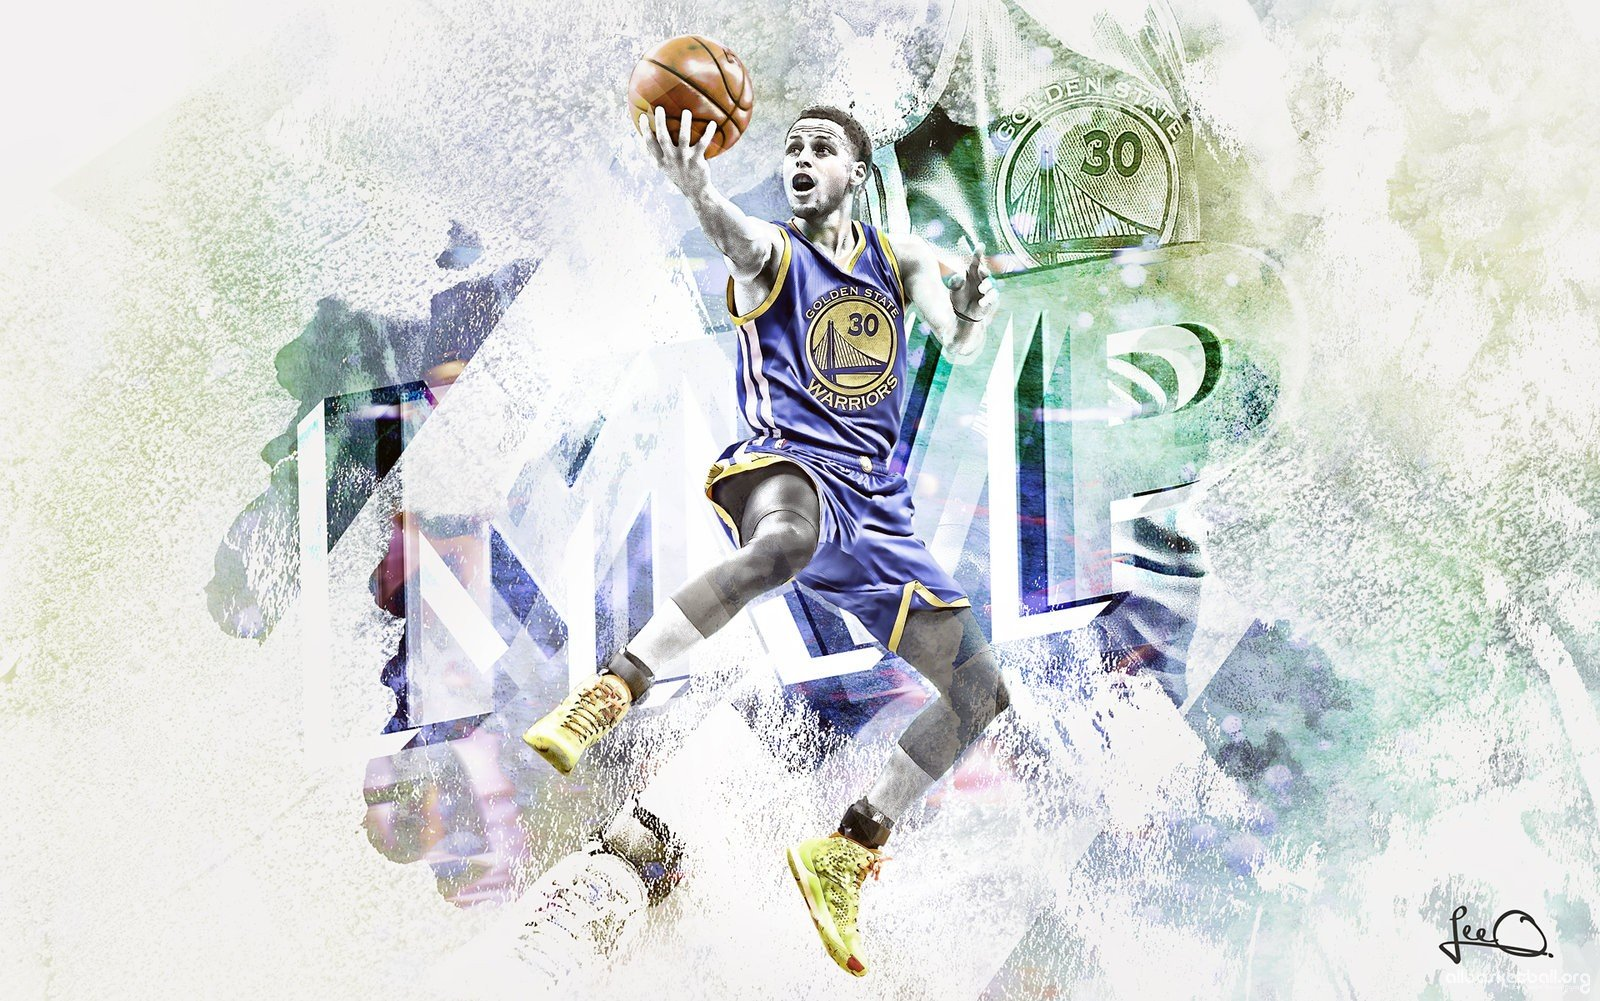 Steph Curry MVP 2015 Wallpapers 1600x1000 1600x1001